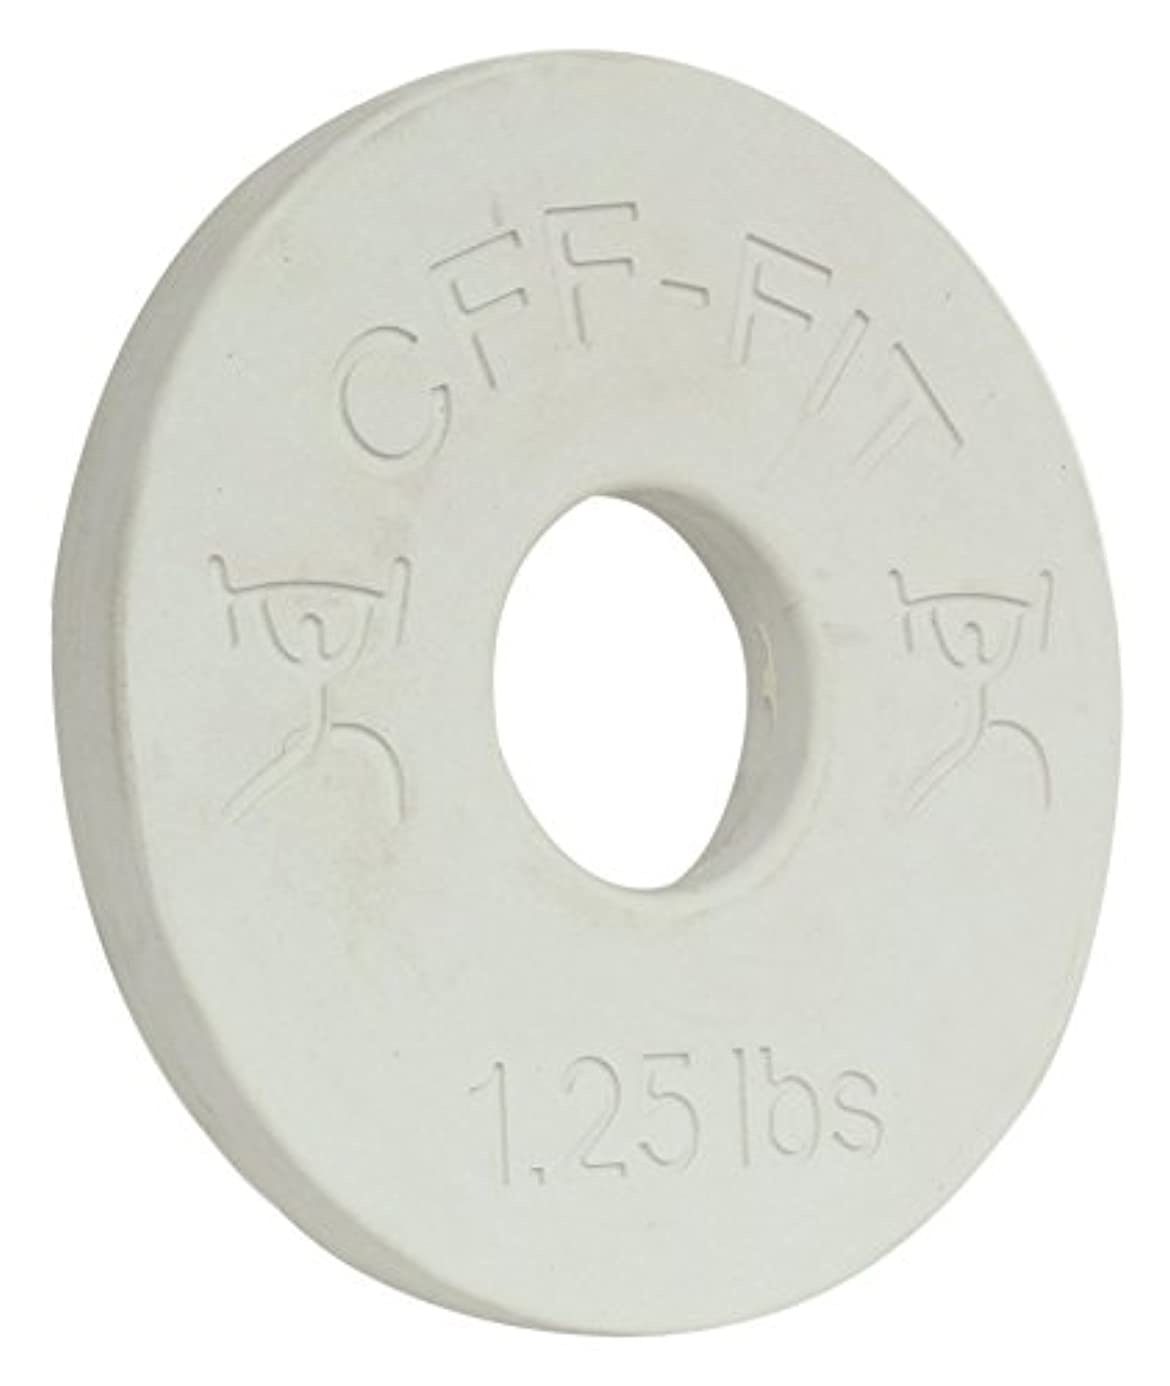 CFF 1.25 lb Competition Rubber Fractional Weight Plates - Pair